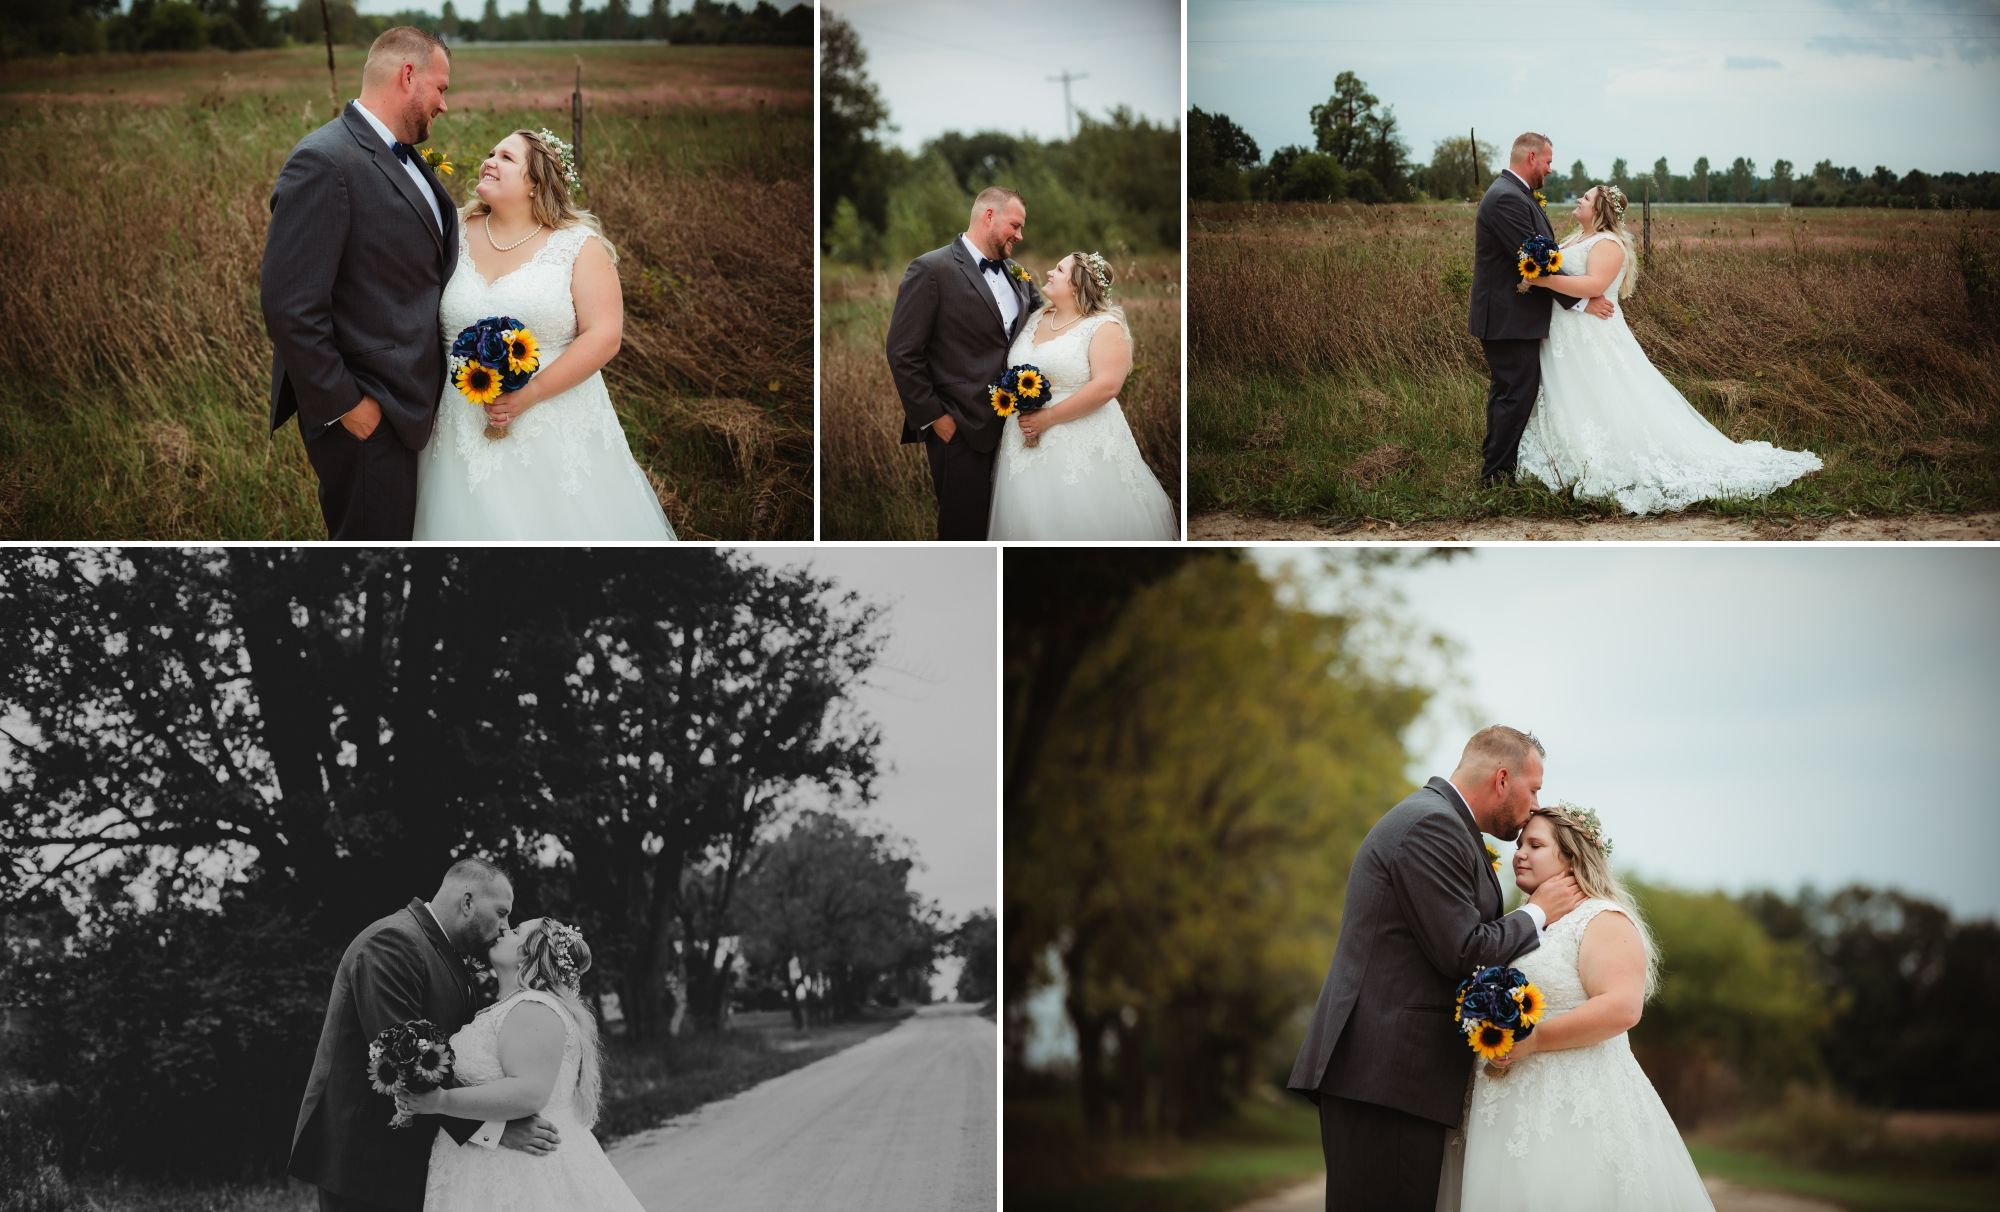 Collage of the bride and groom smiling at each other and kissing on a dirt road.